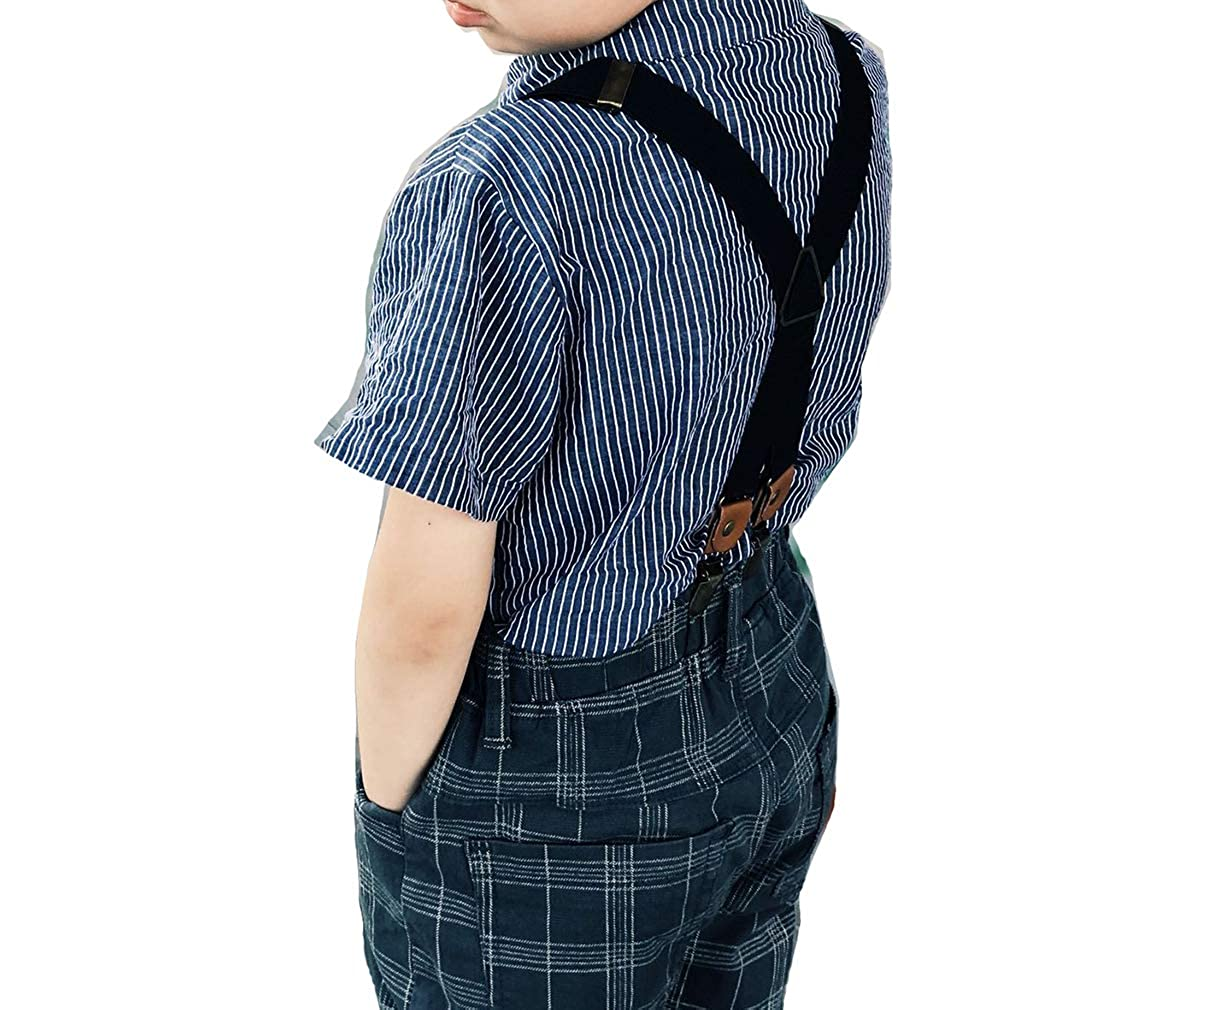 MOHSLEE Boys Kids X Back Elastic Solid Color Suspenders Braces /& 4 Leather Clips